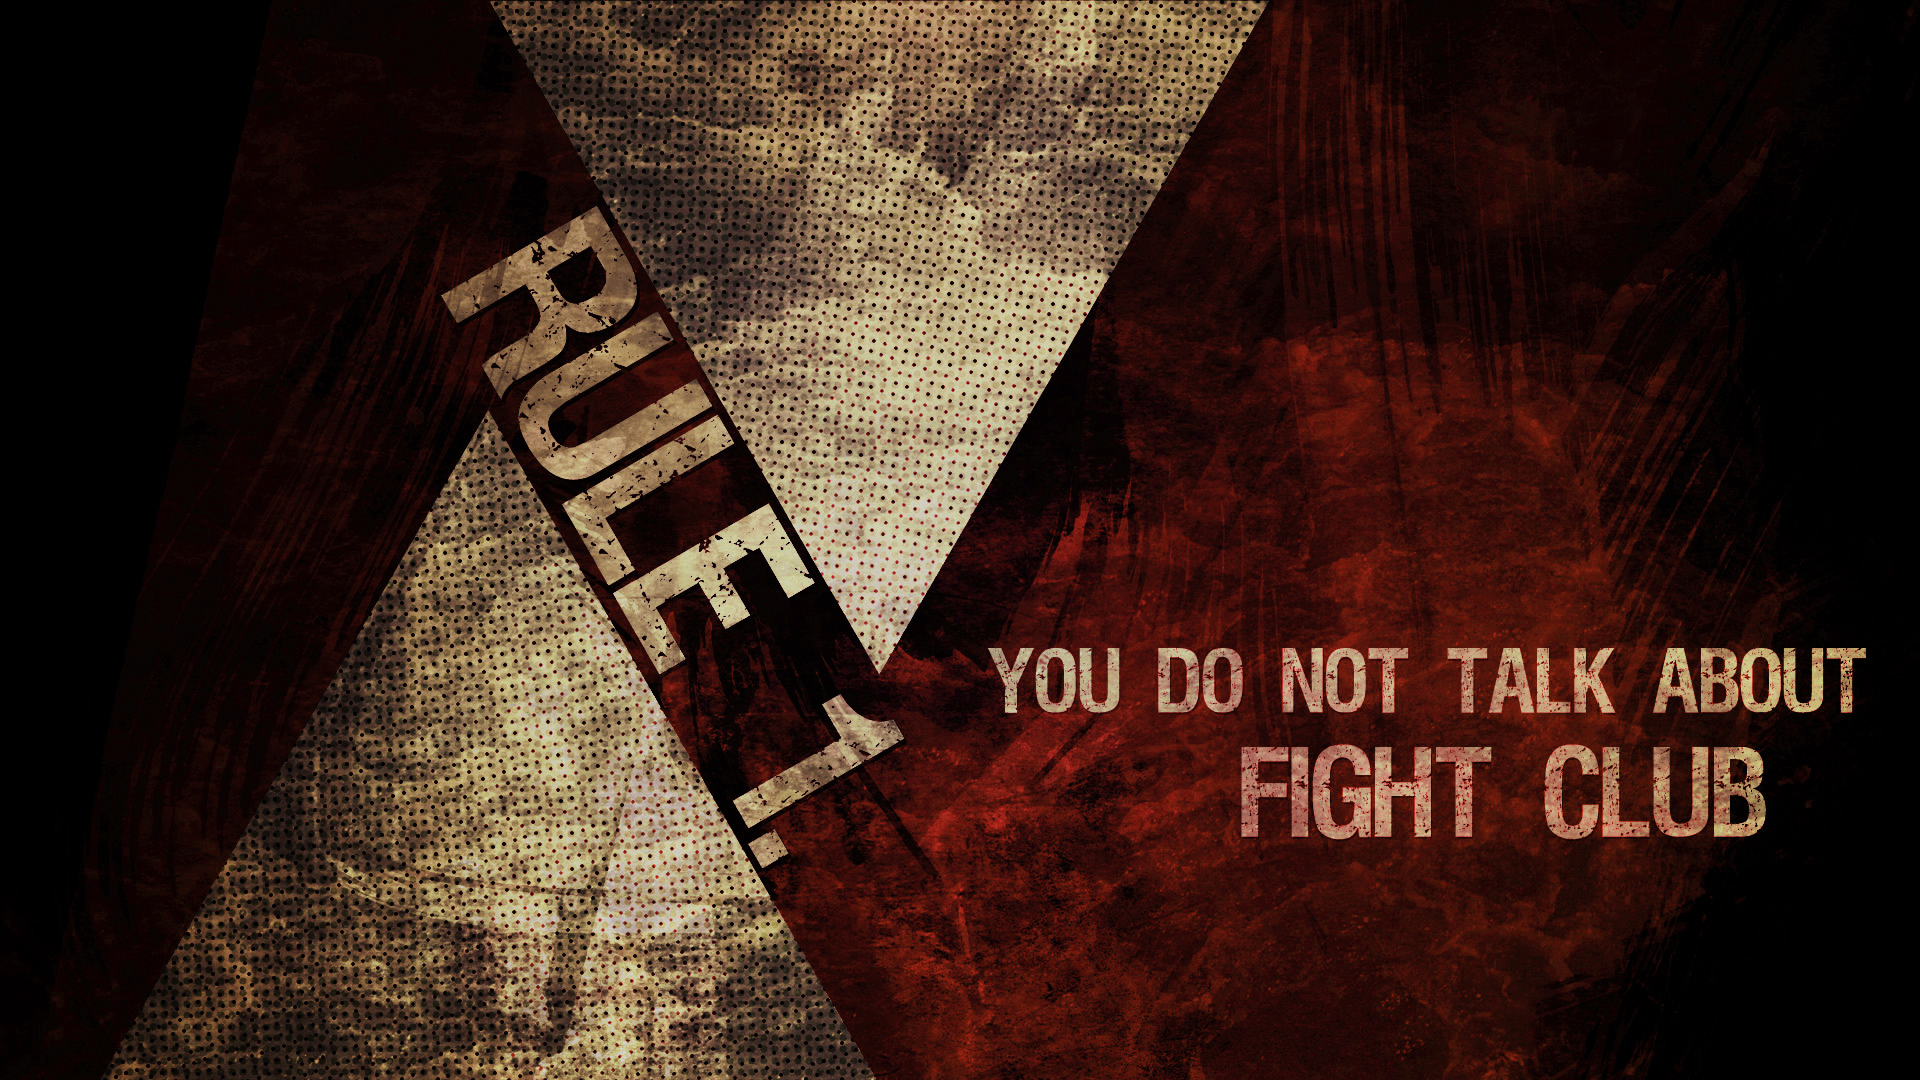 Movie - Fight Club  Fight Cub Wallpaper